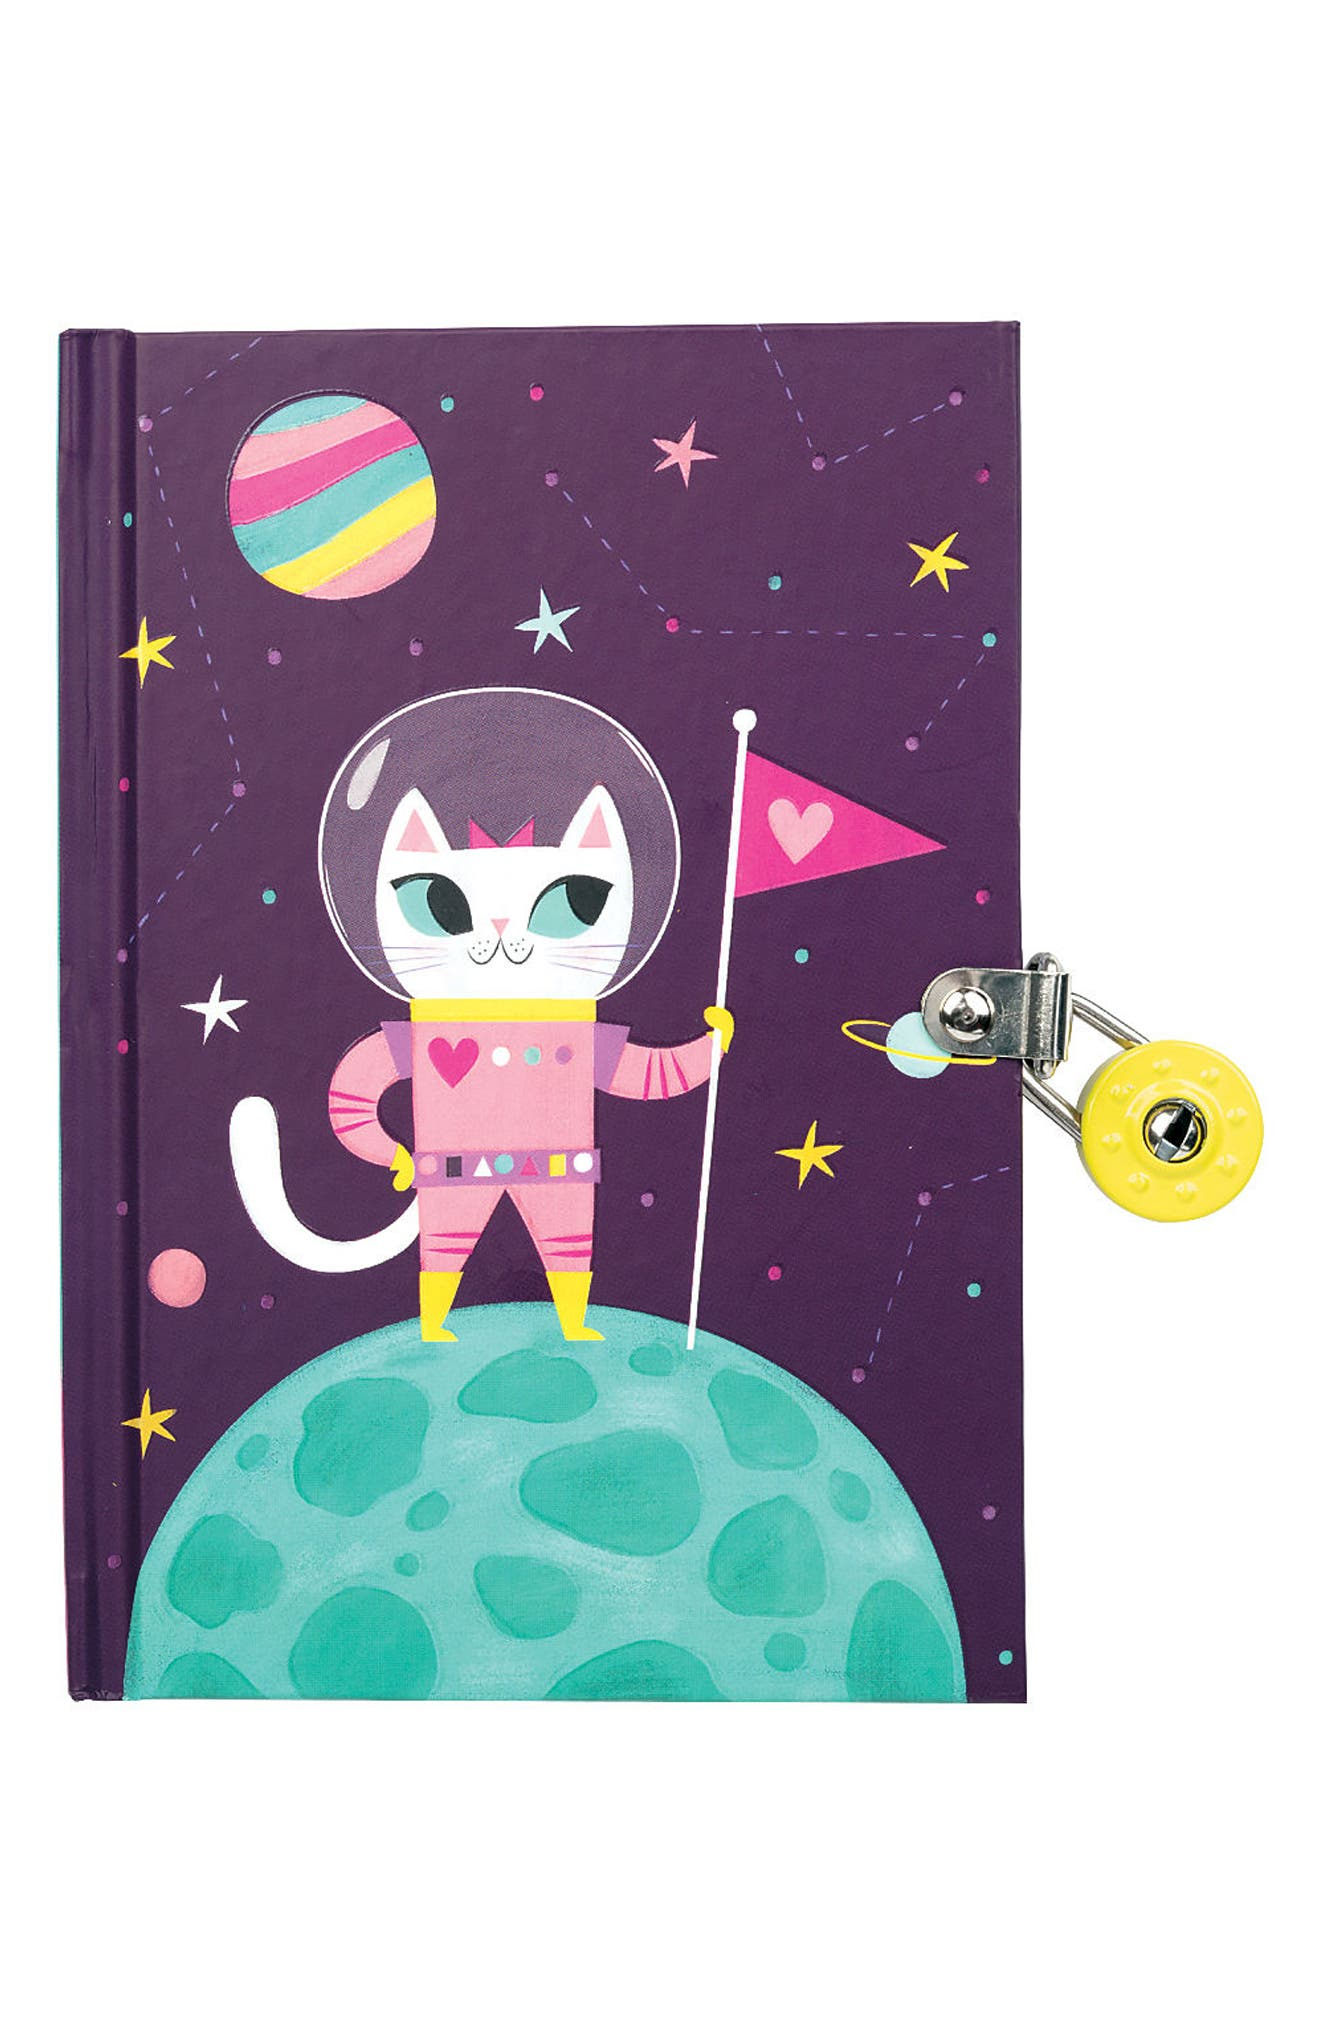 Space Cat Glow-in-the-Dark Locked Diary,                             Main thumbnail 1, color,                             500